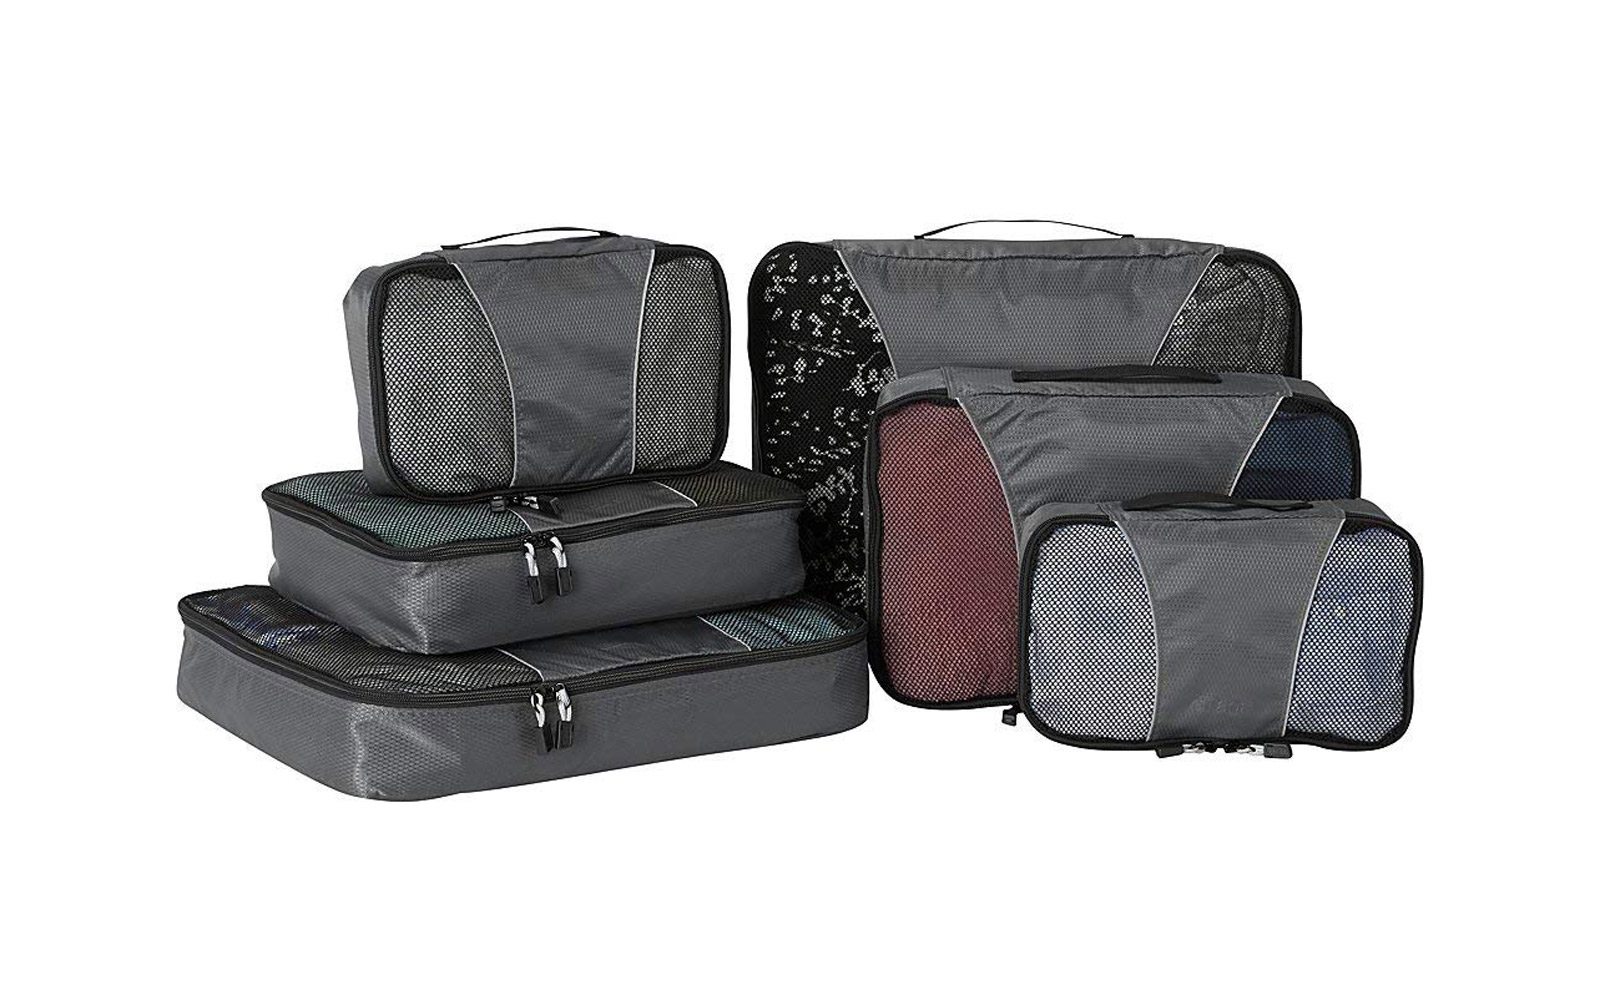 amazon black friday deals ebags packing cubes